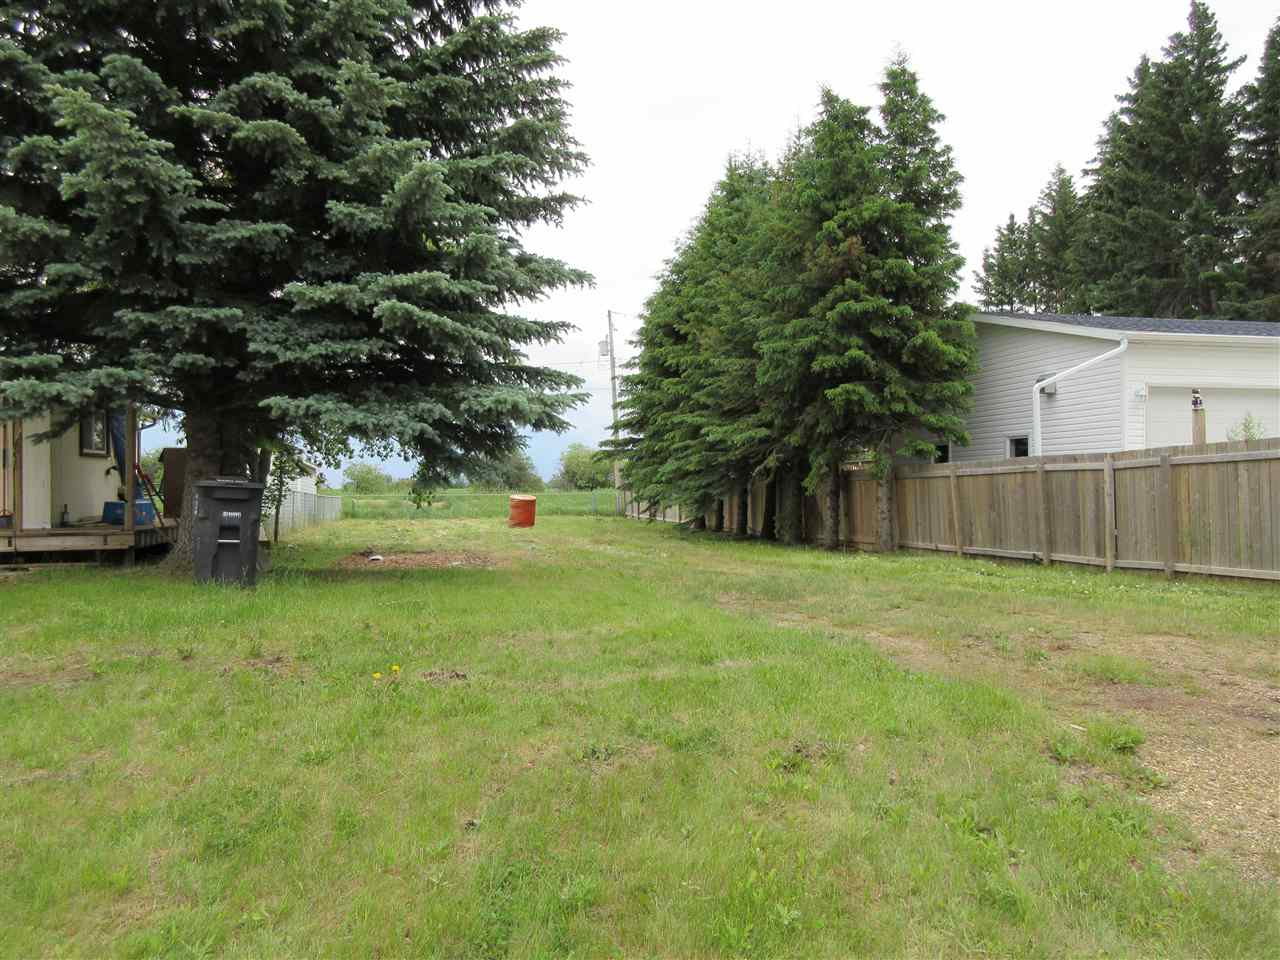 Photo 1: 913 1 Street: Thorhild Vacant Lot for sale : MLS® # E4069741